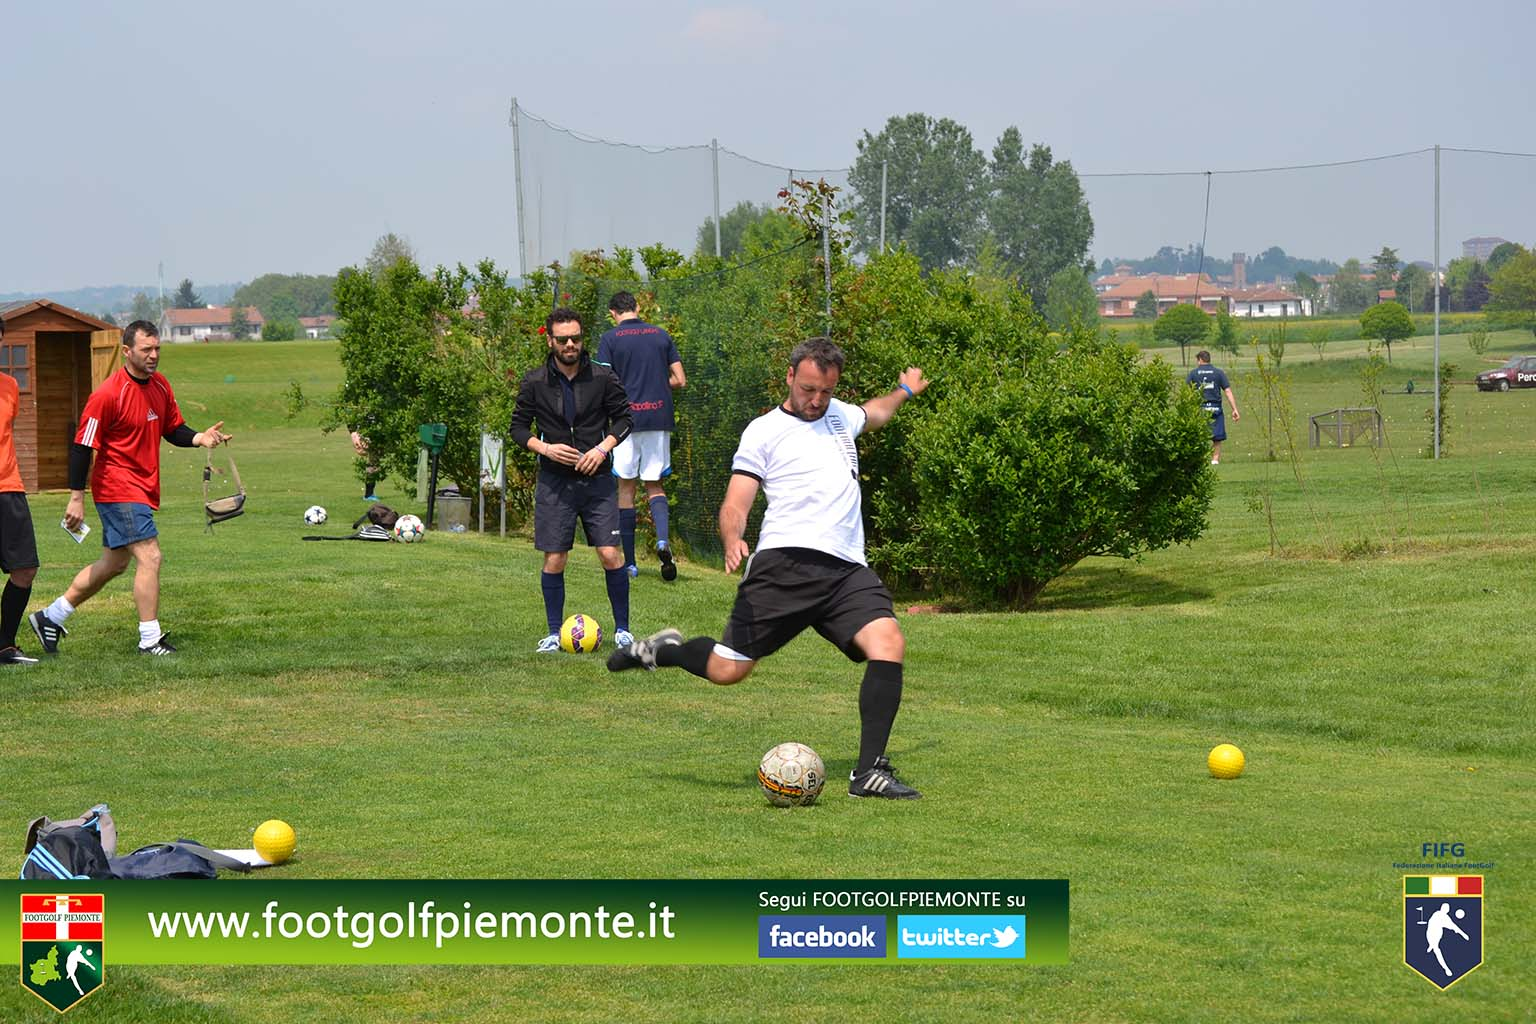 FOTO 9 Regions' Cup Footgolf Piemonte 2016 Golf Città di Asti (At) 30apr16-54